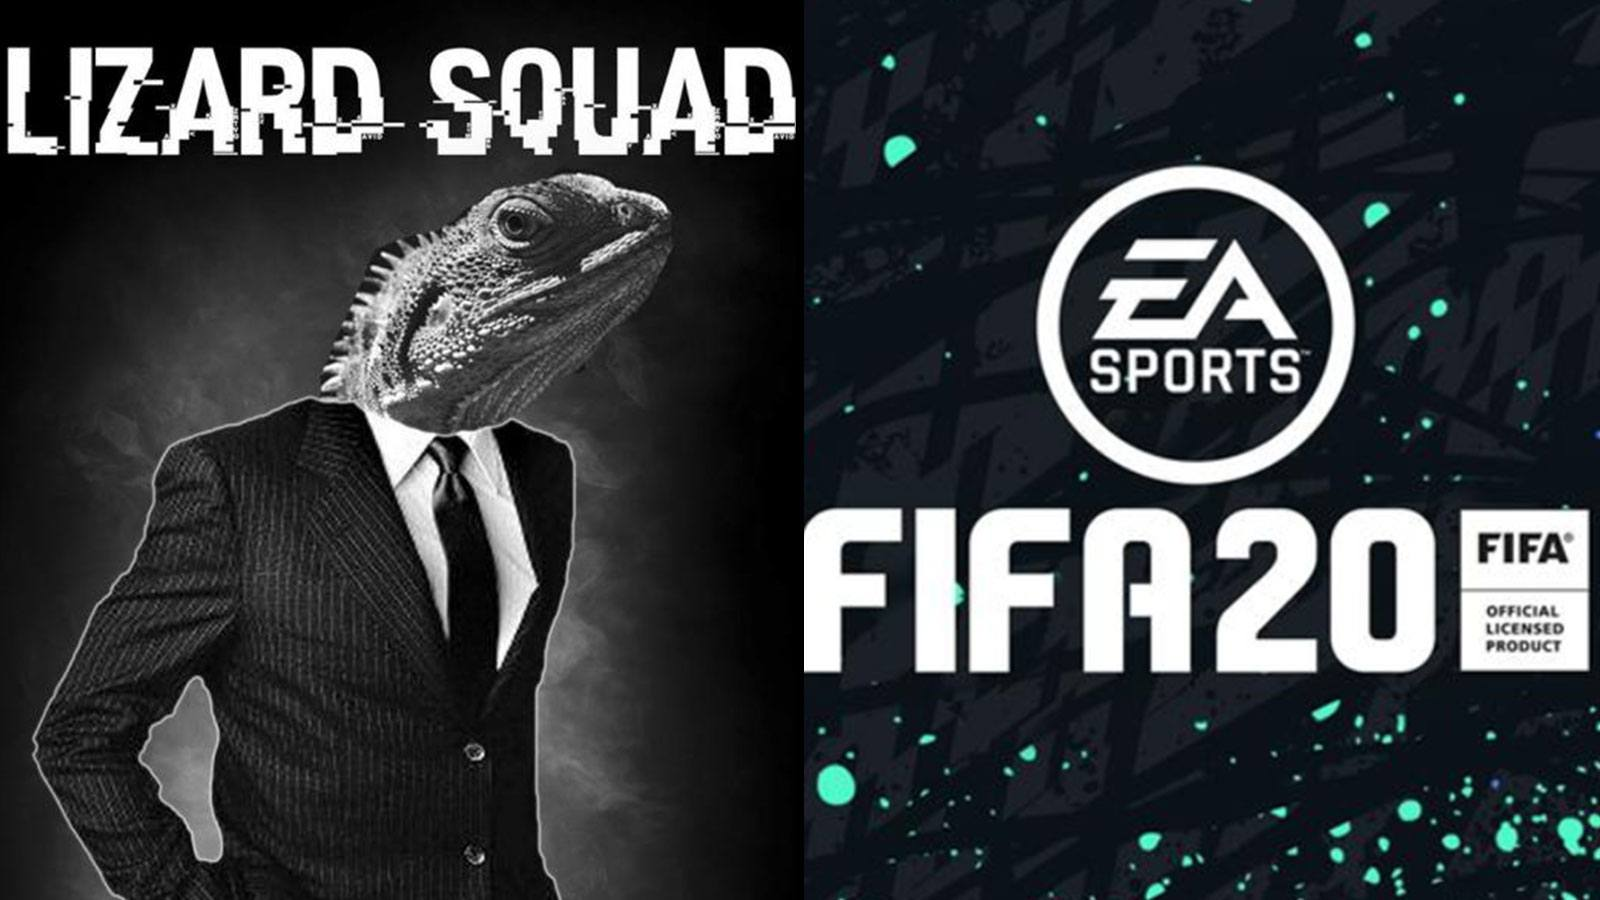 Lizard Squad | Electronic Arts